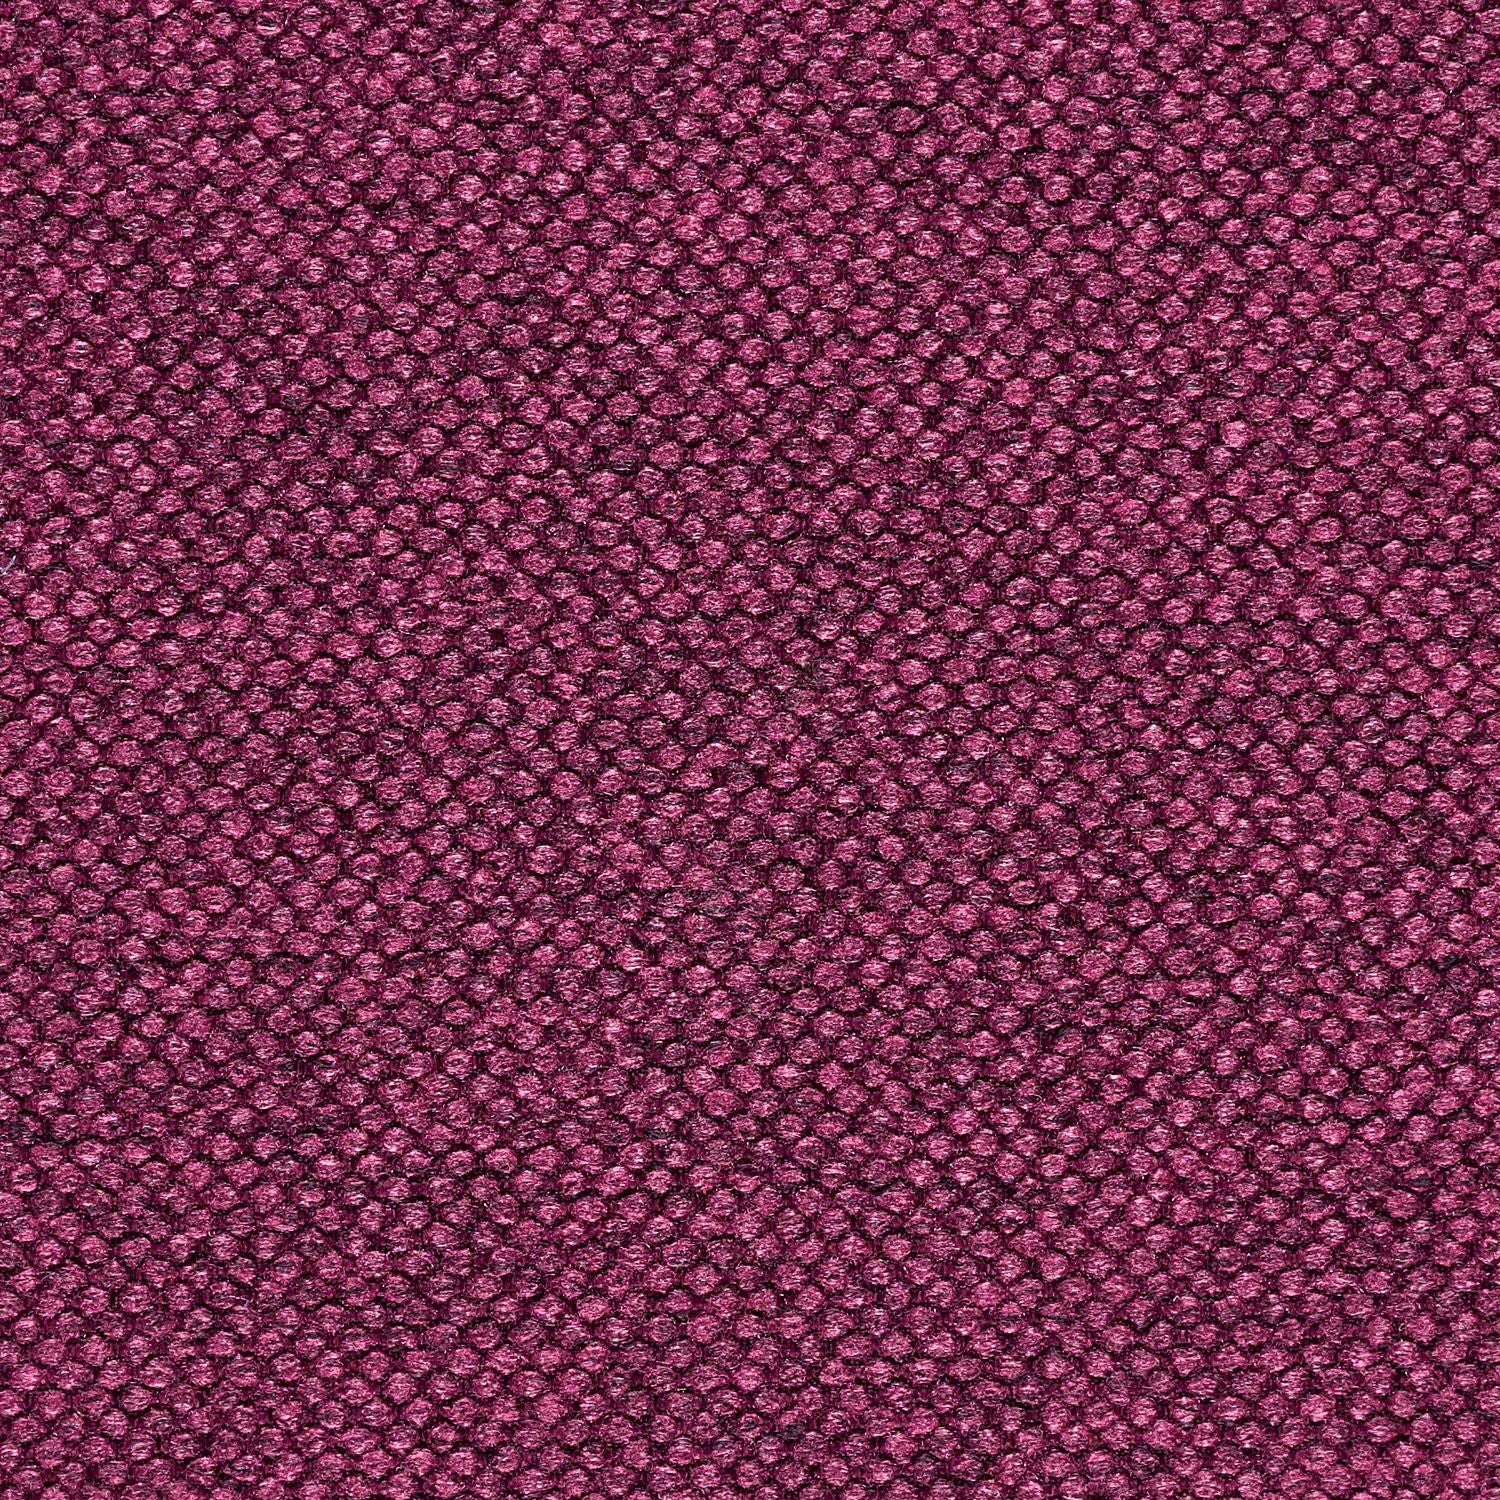 Beetroot Tweed|4058-16-D325|Beetroot Tweed 4058-16-D325